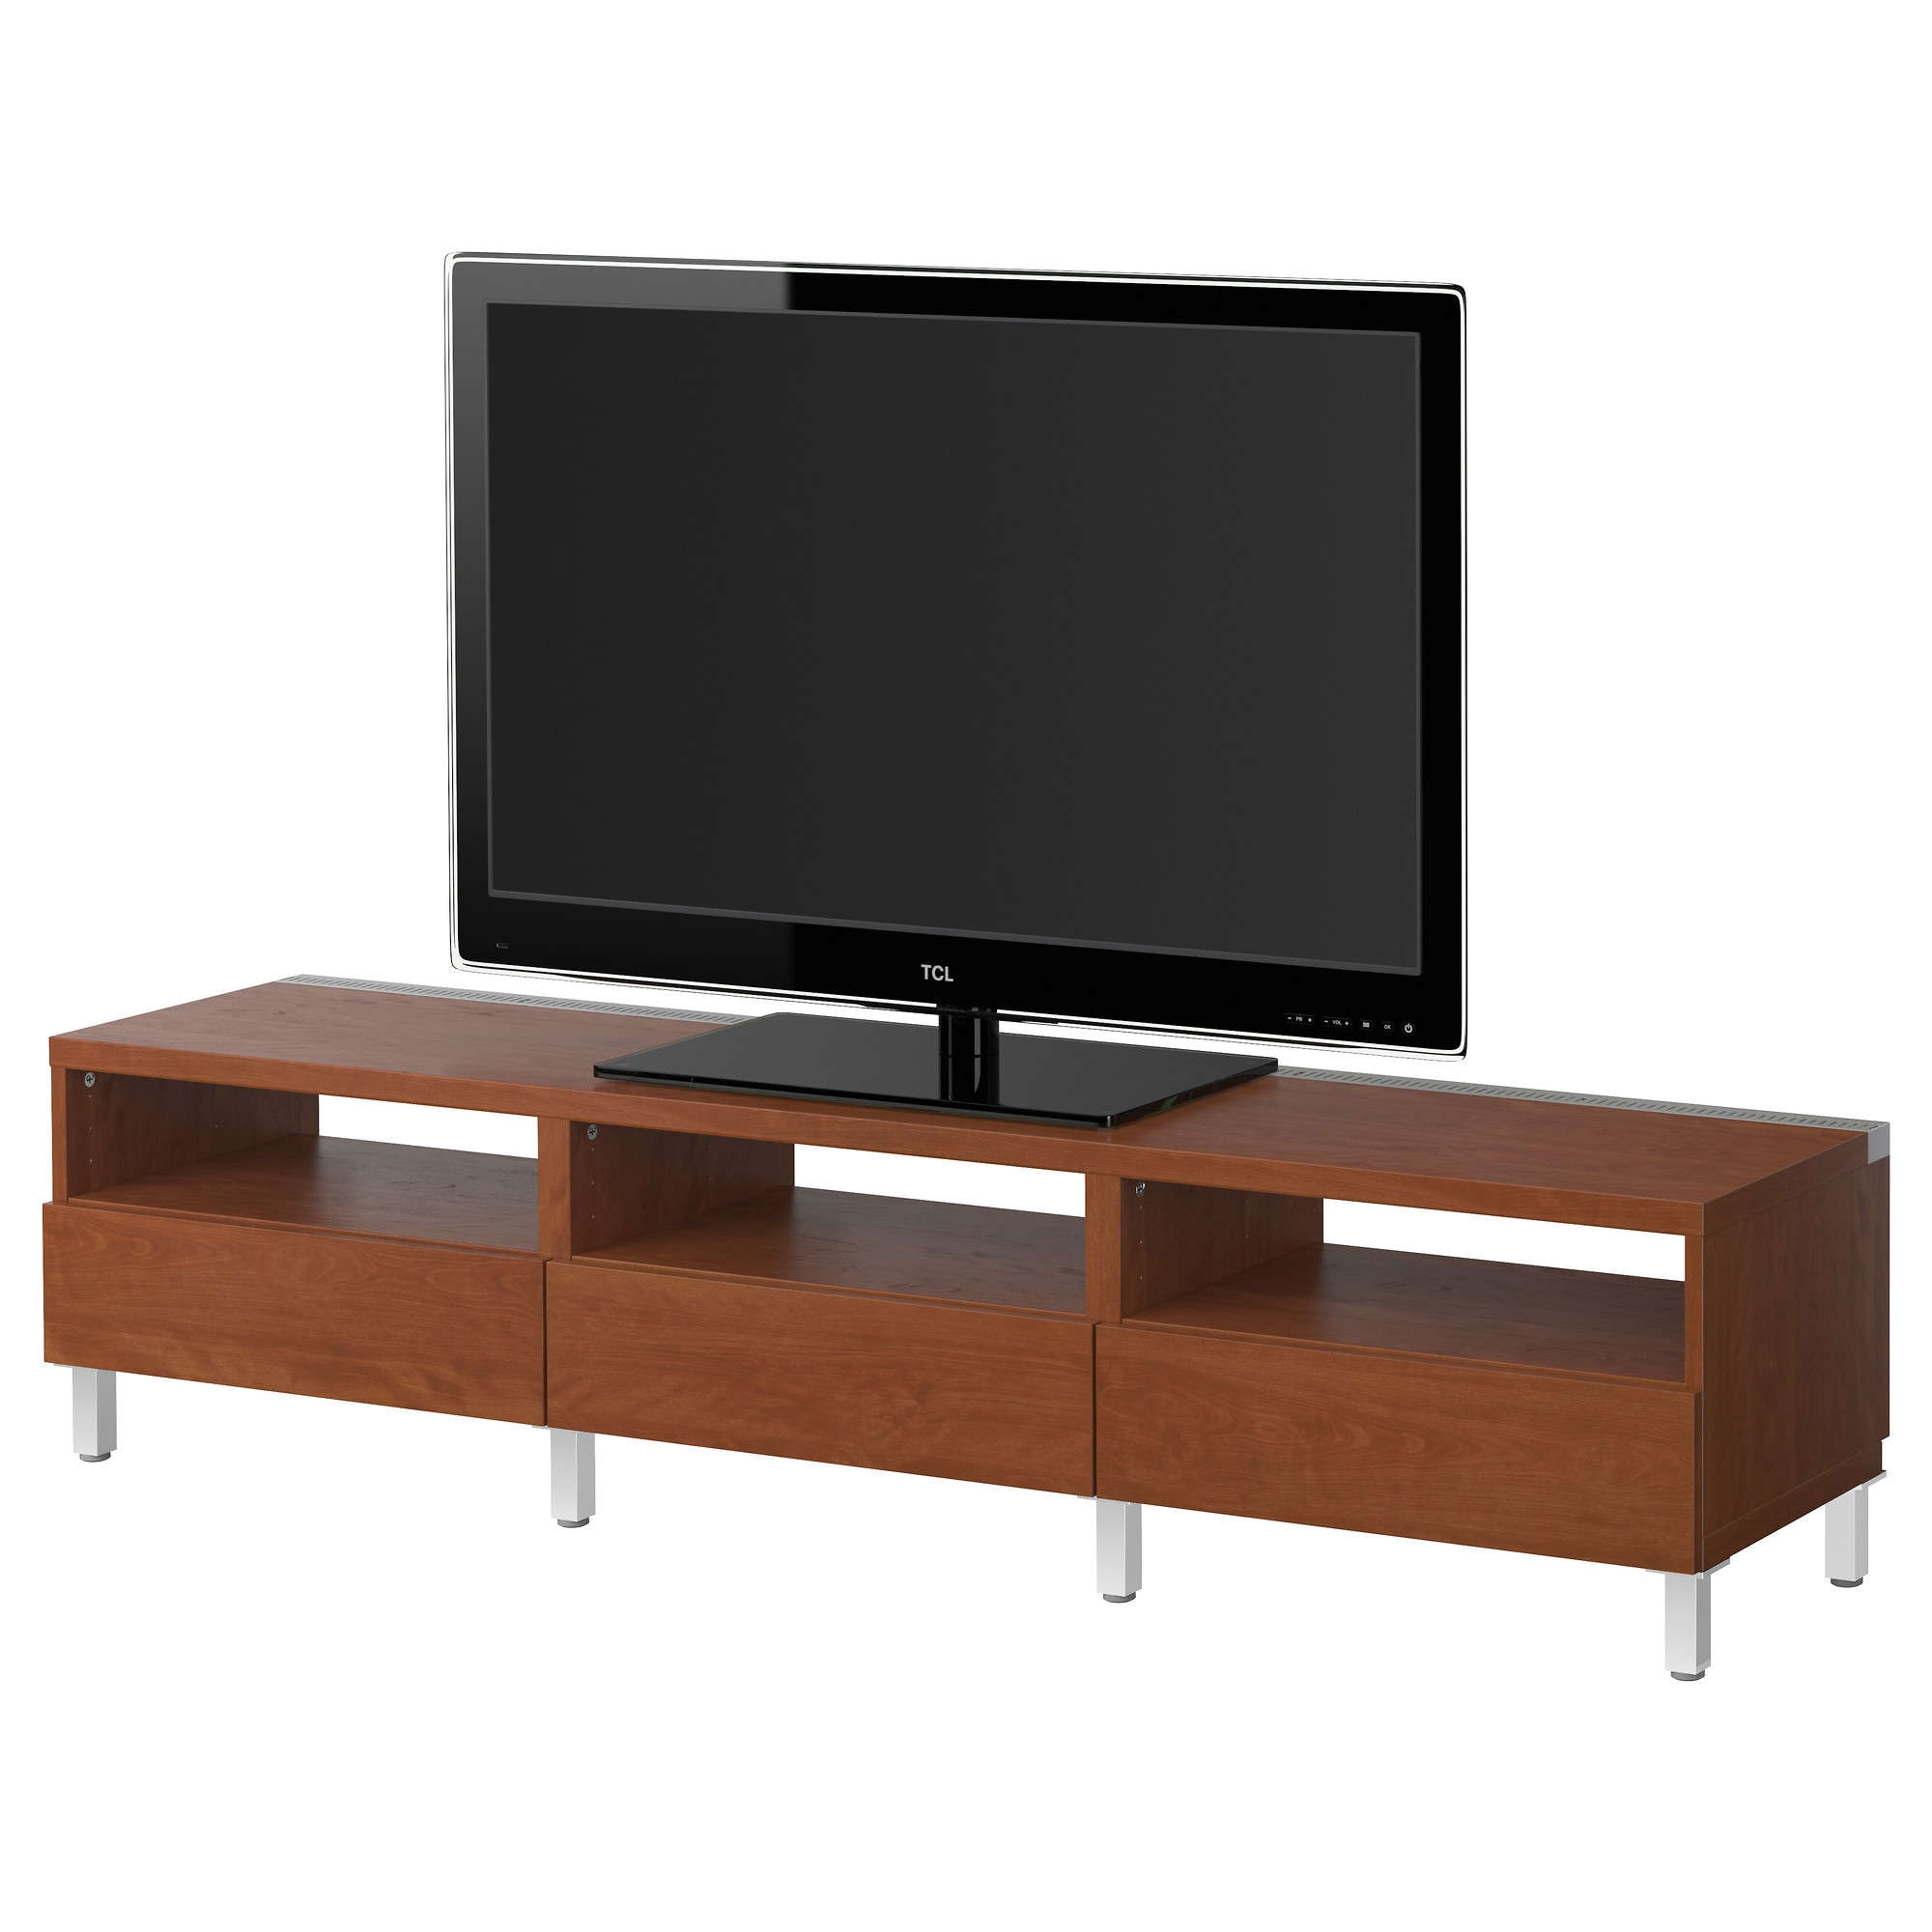 Pin ikea expedit tv storage unit image search results on for Expedit tv bench